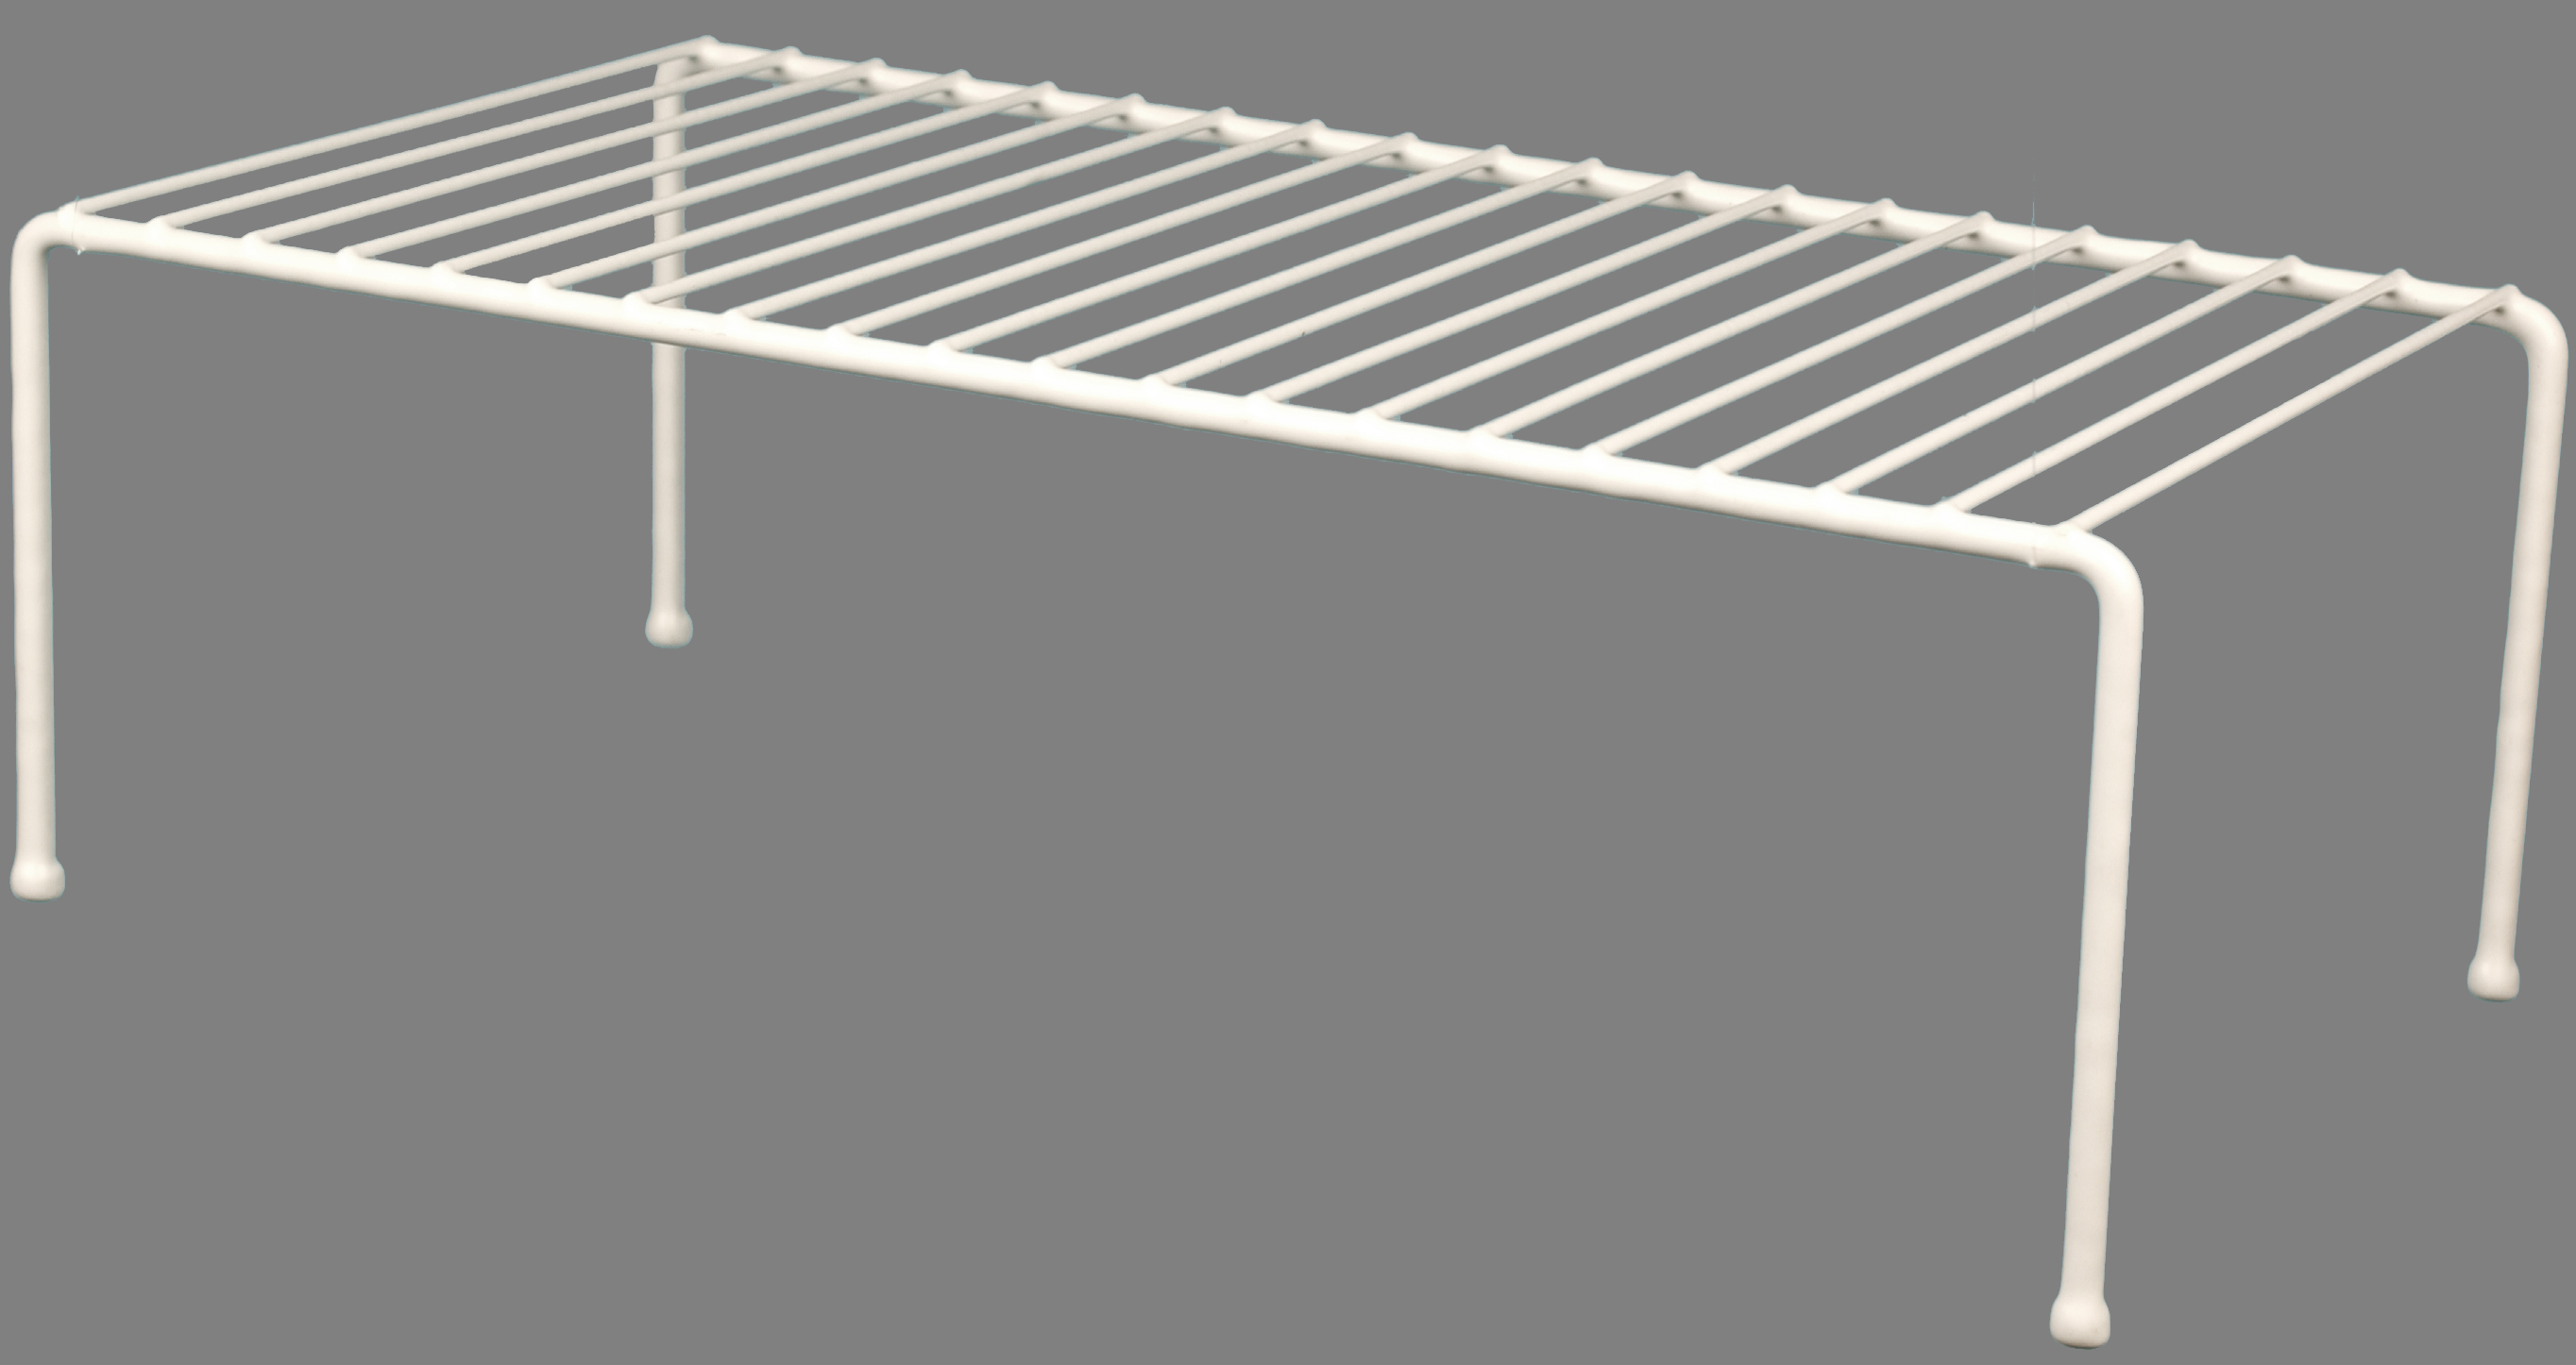 004-710 AP Products Helper Shelf Used In Pantry To Maximize Storage